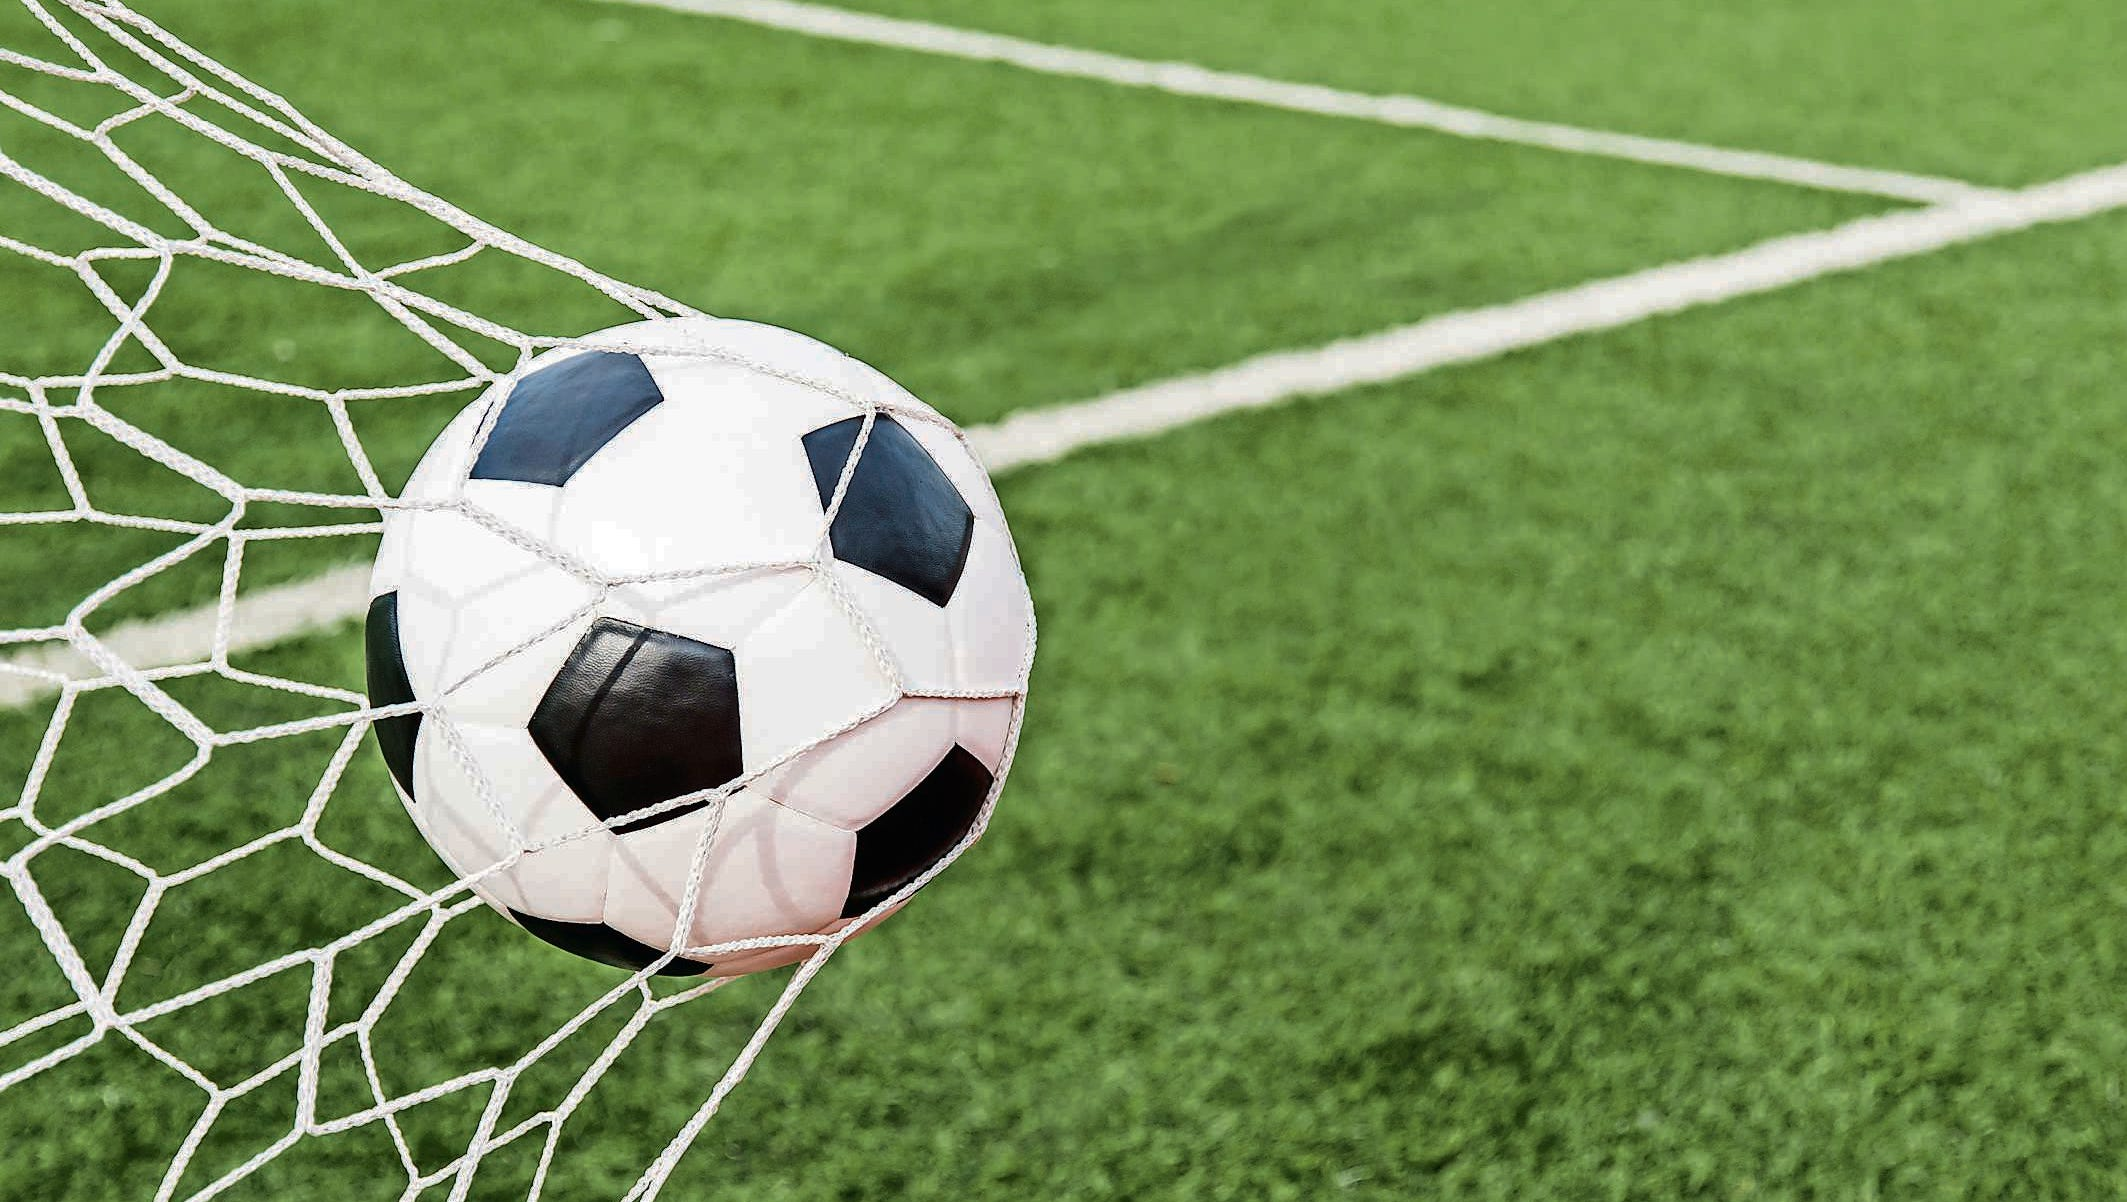 Tuesday's WNC boys soccer results